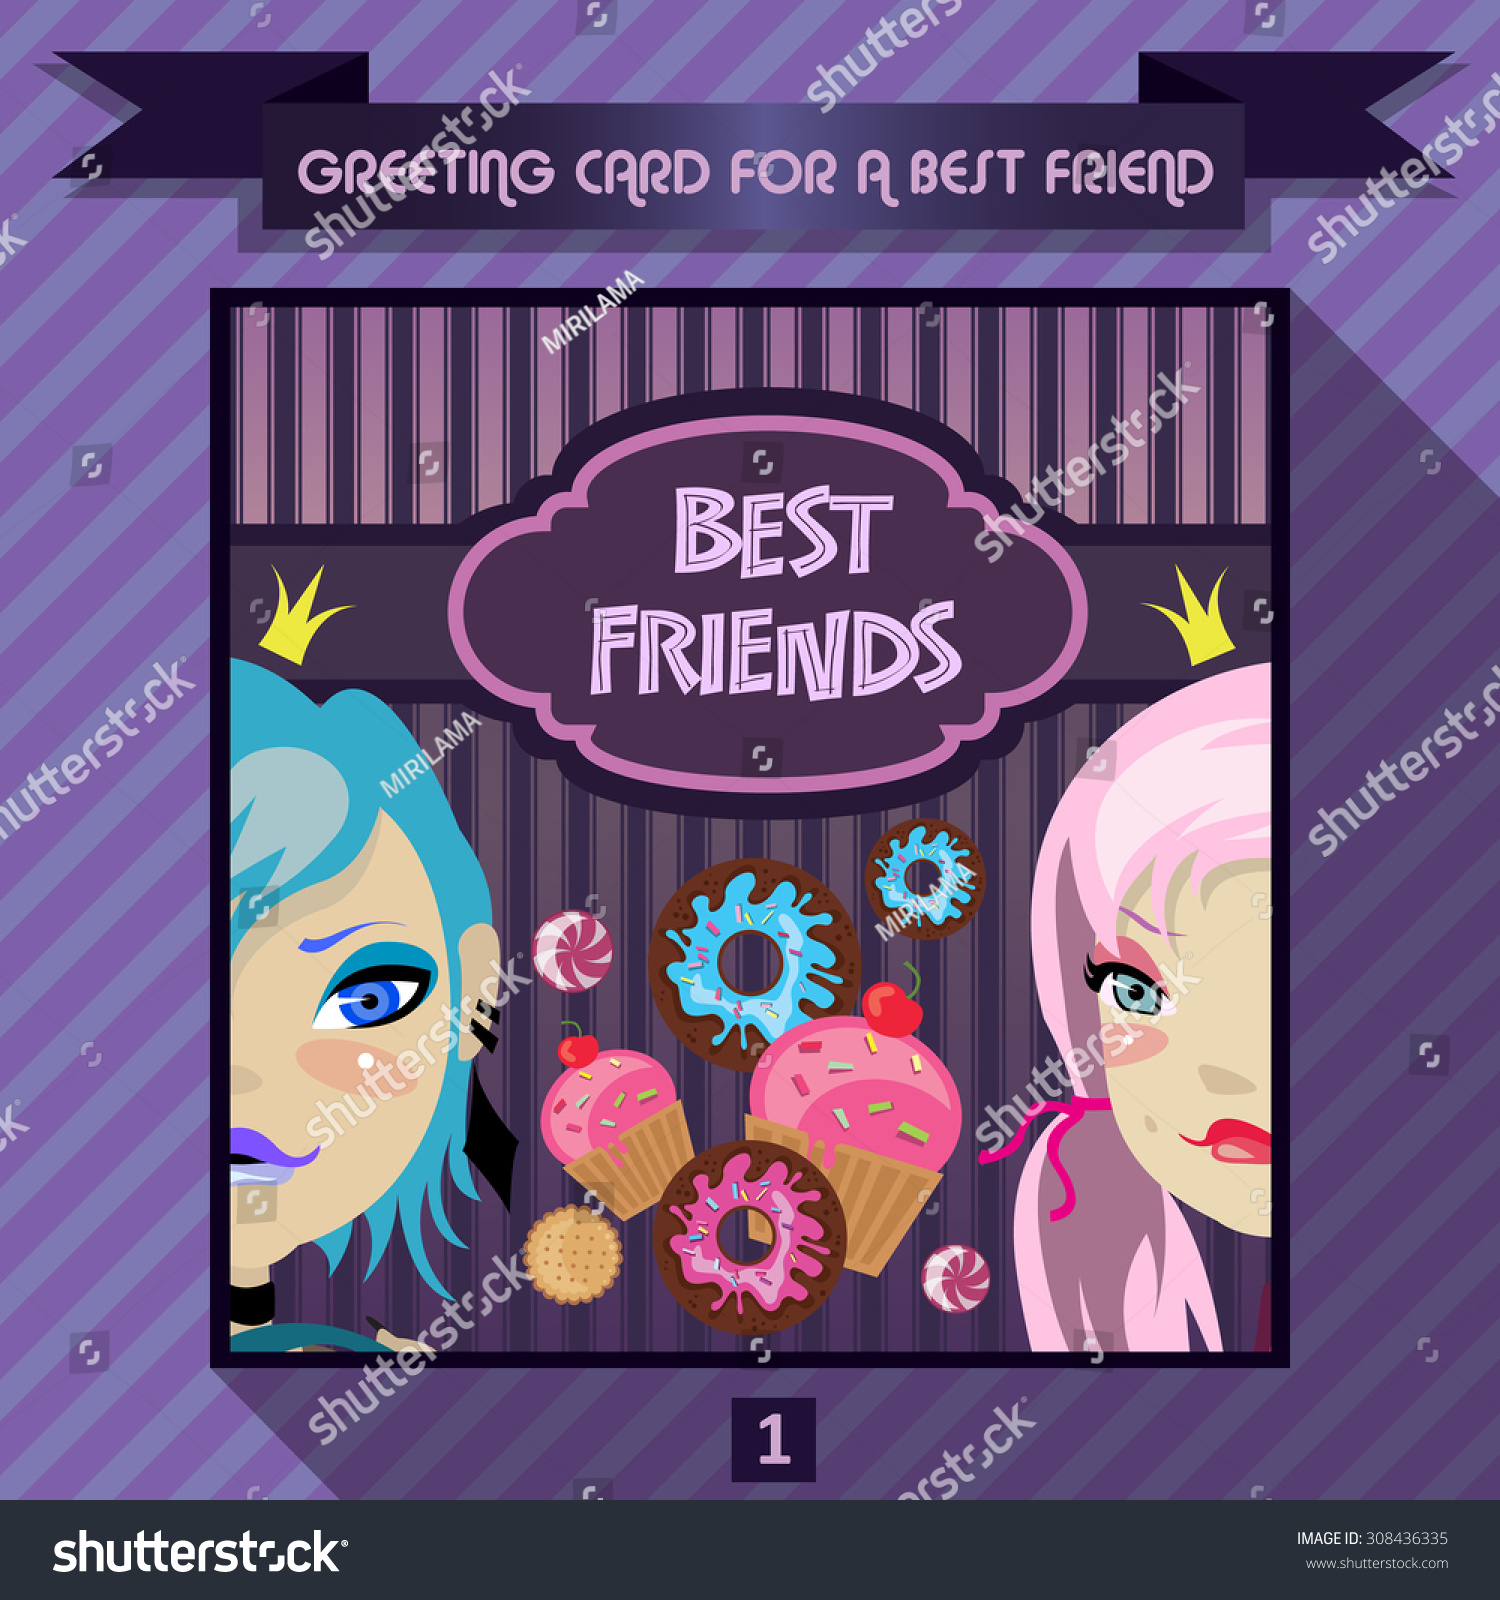 Greeting Card Best Friend Birthday Greetings Stock Vector Royalty